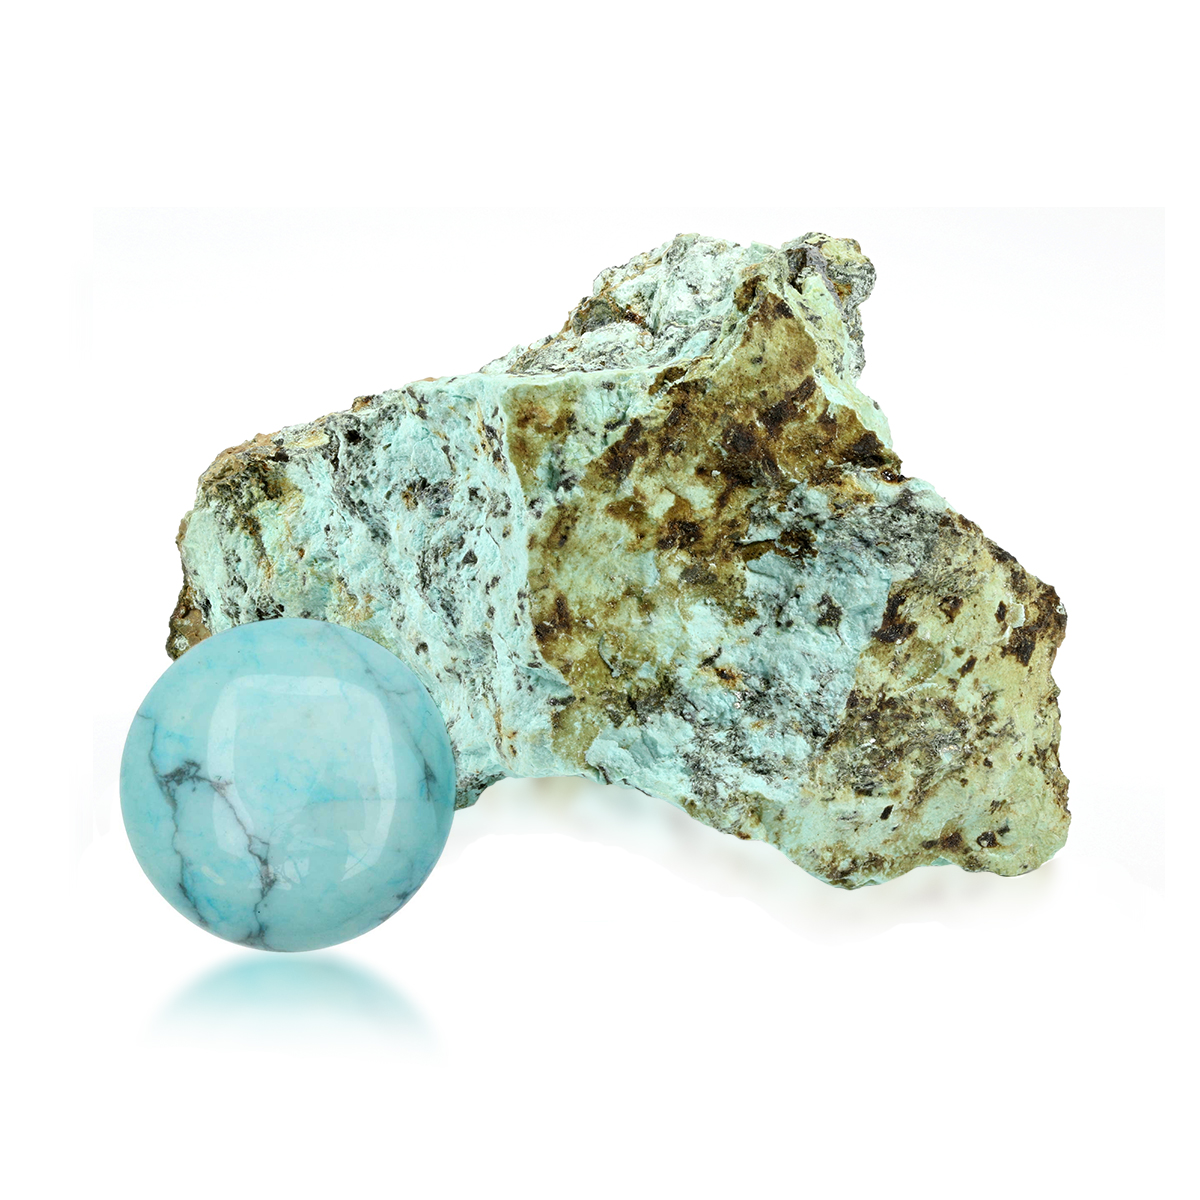 Turquoise, December's Alternate Birthstone